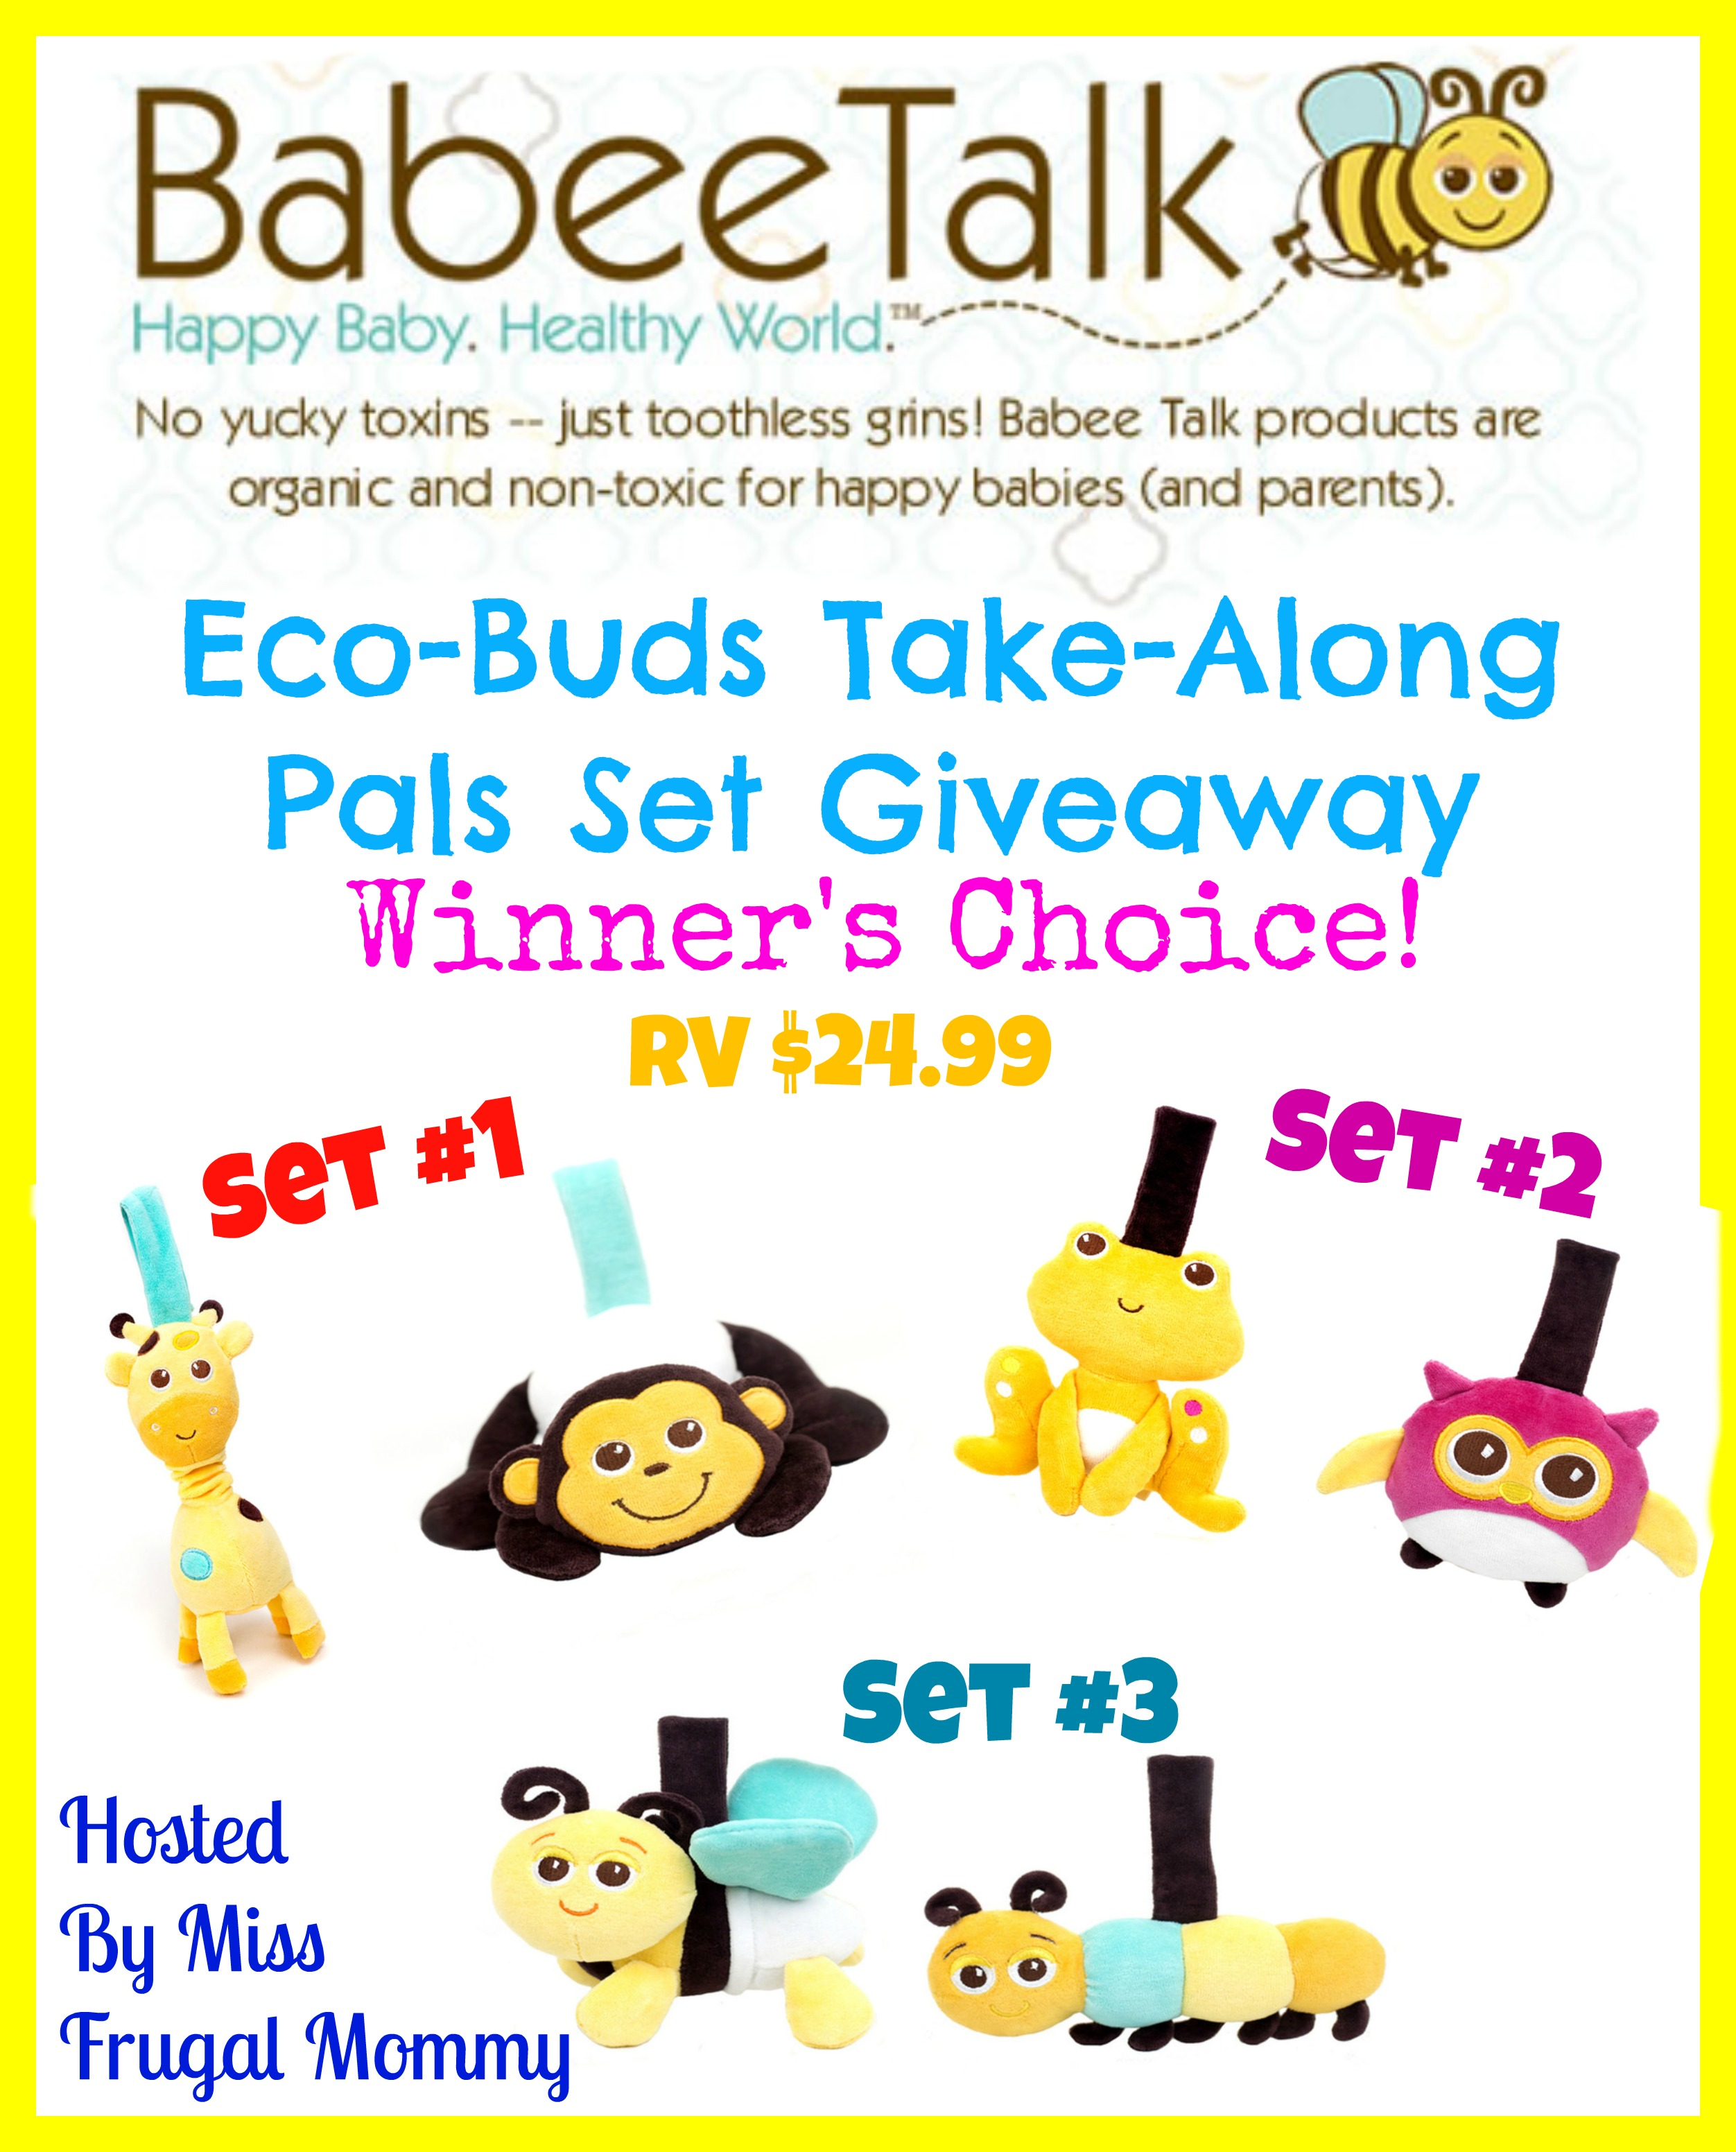 Eco-Buds Take-Along Pals Giveway (Winner's Choice)